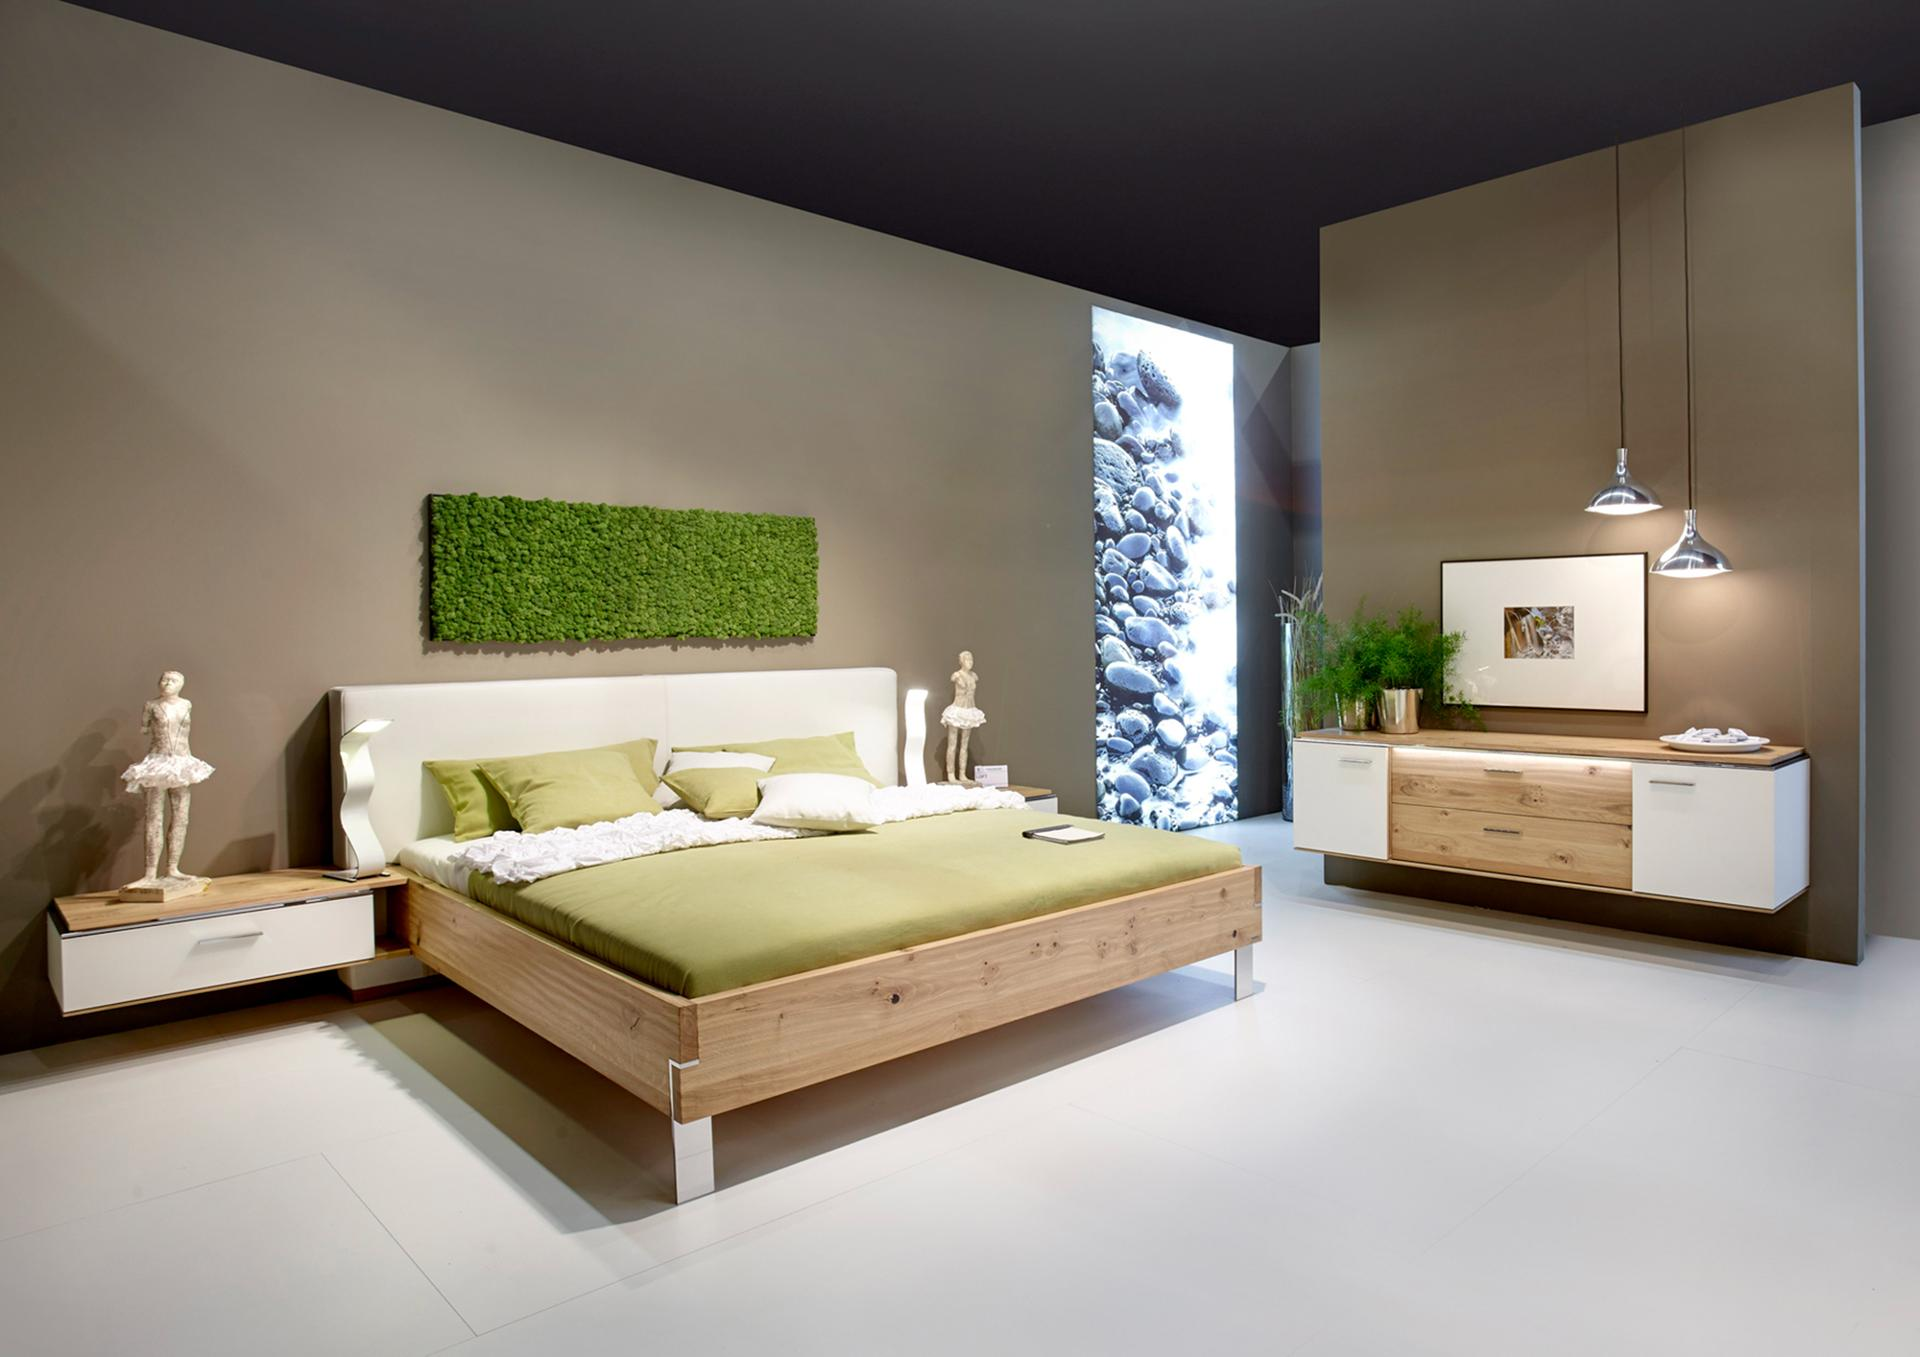 schlafzimmer gestalten mit farbe m belideen. Black Bedroom Furniture Sets. Home Design Ideas